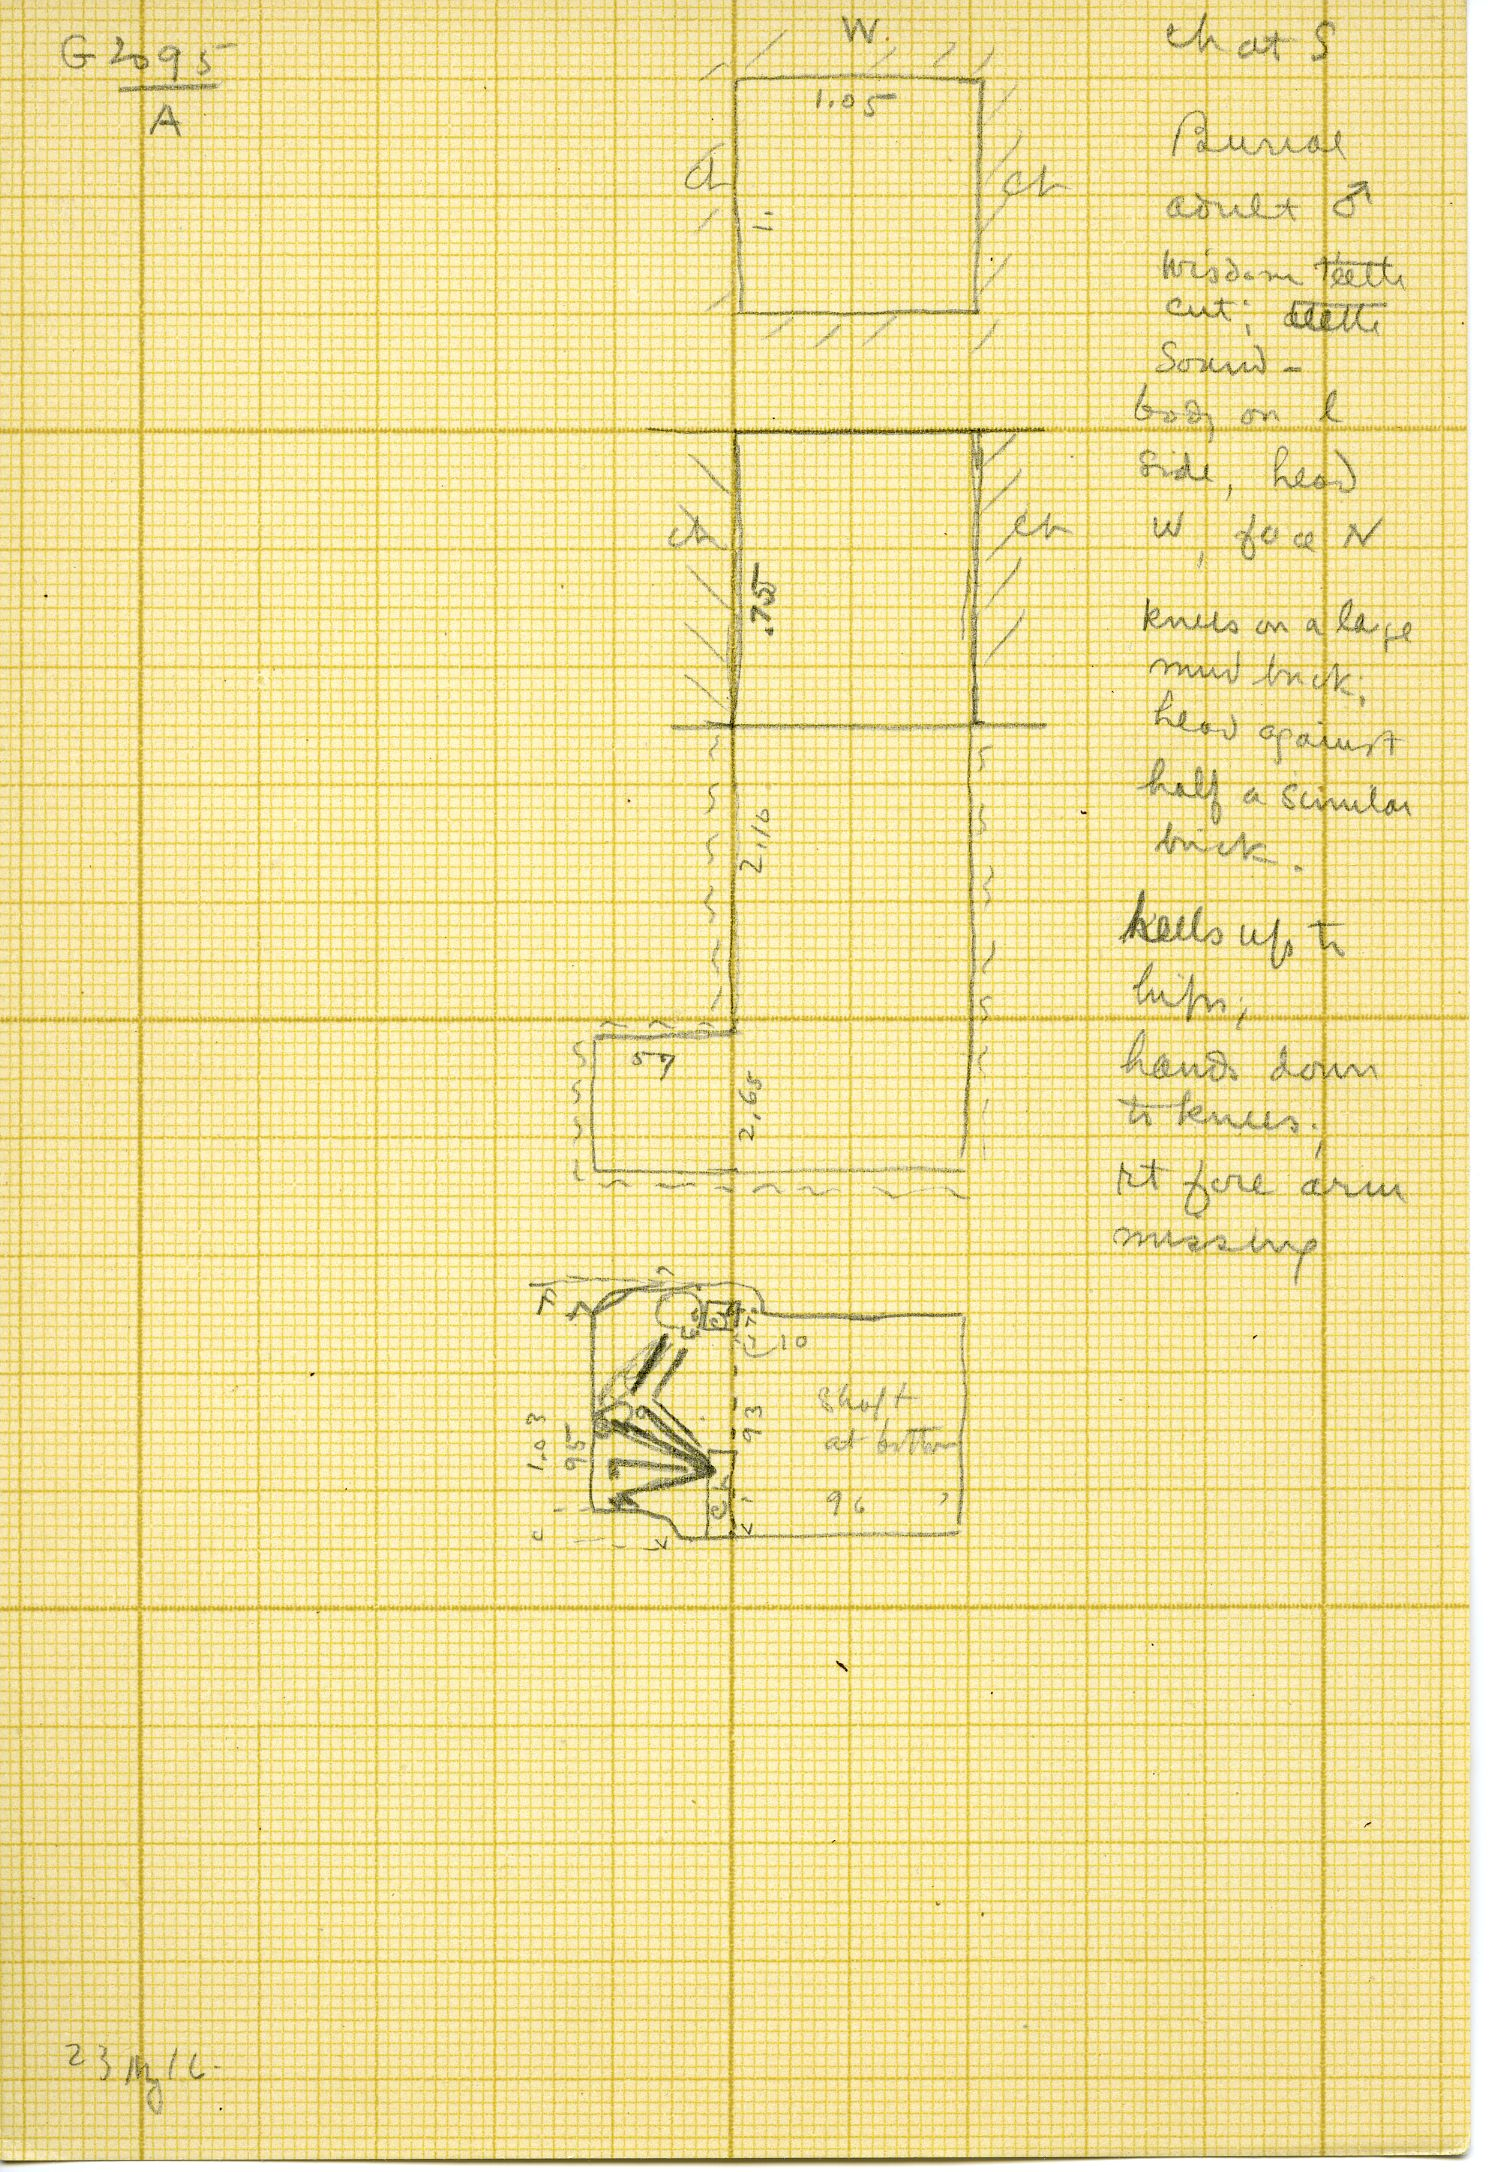 Maps and plans: G 3095, Shaft A